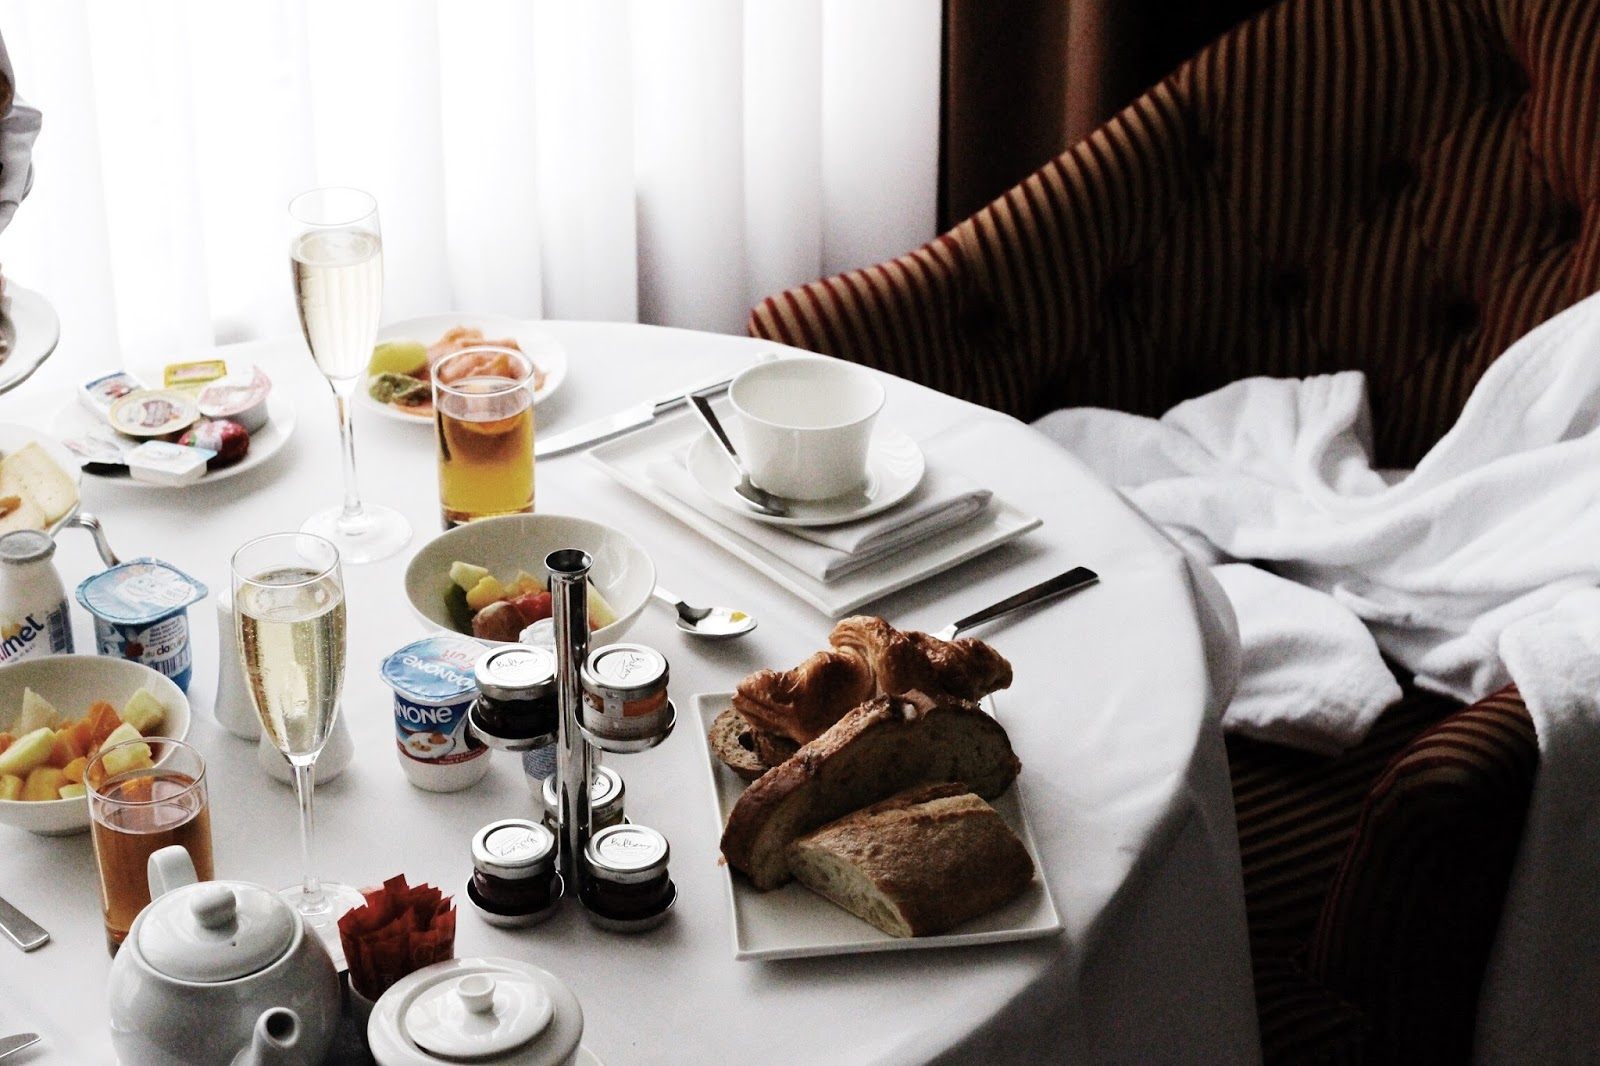 Hotel Dukes' Palace Breakfast in Room Review